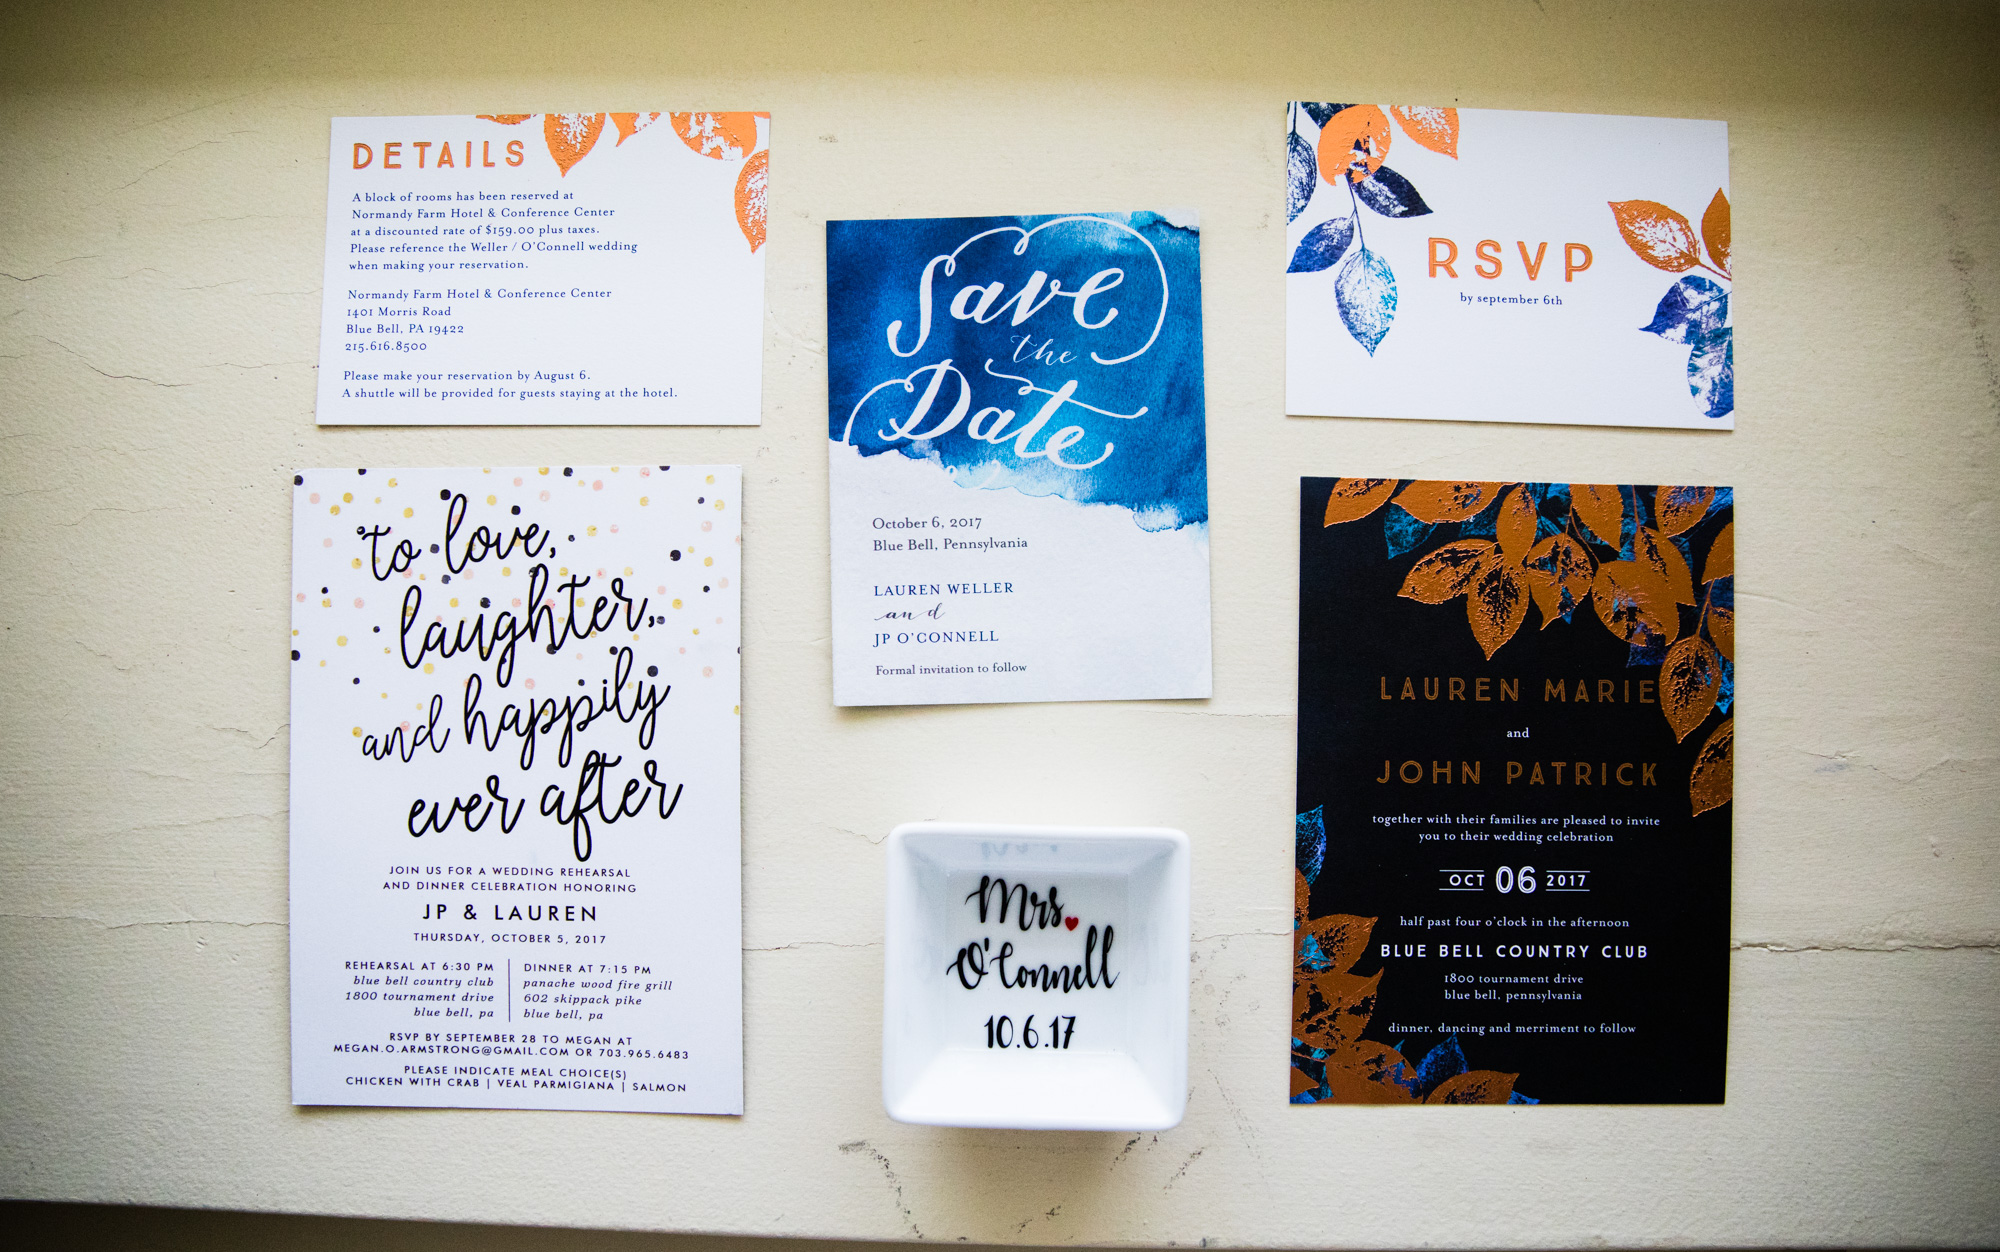 LOVESTRUCK PICTURES NORMANDY FARMS WEDDING - 010.jpg